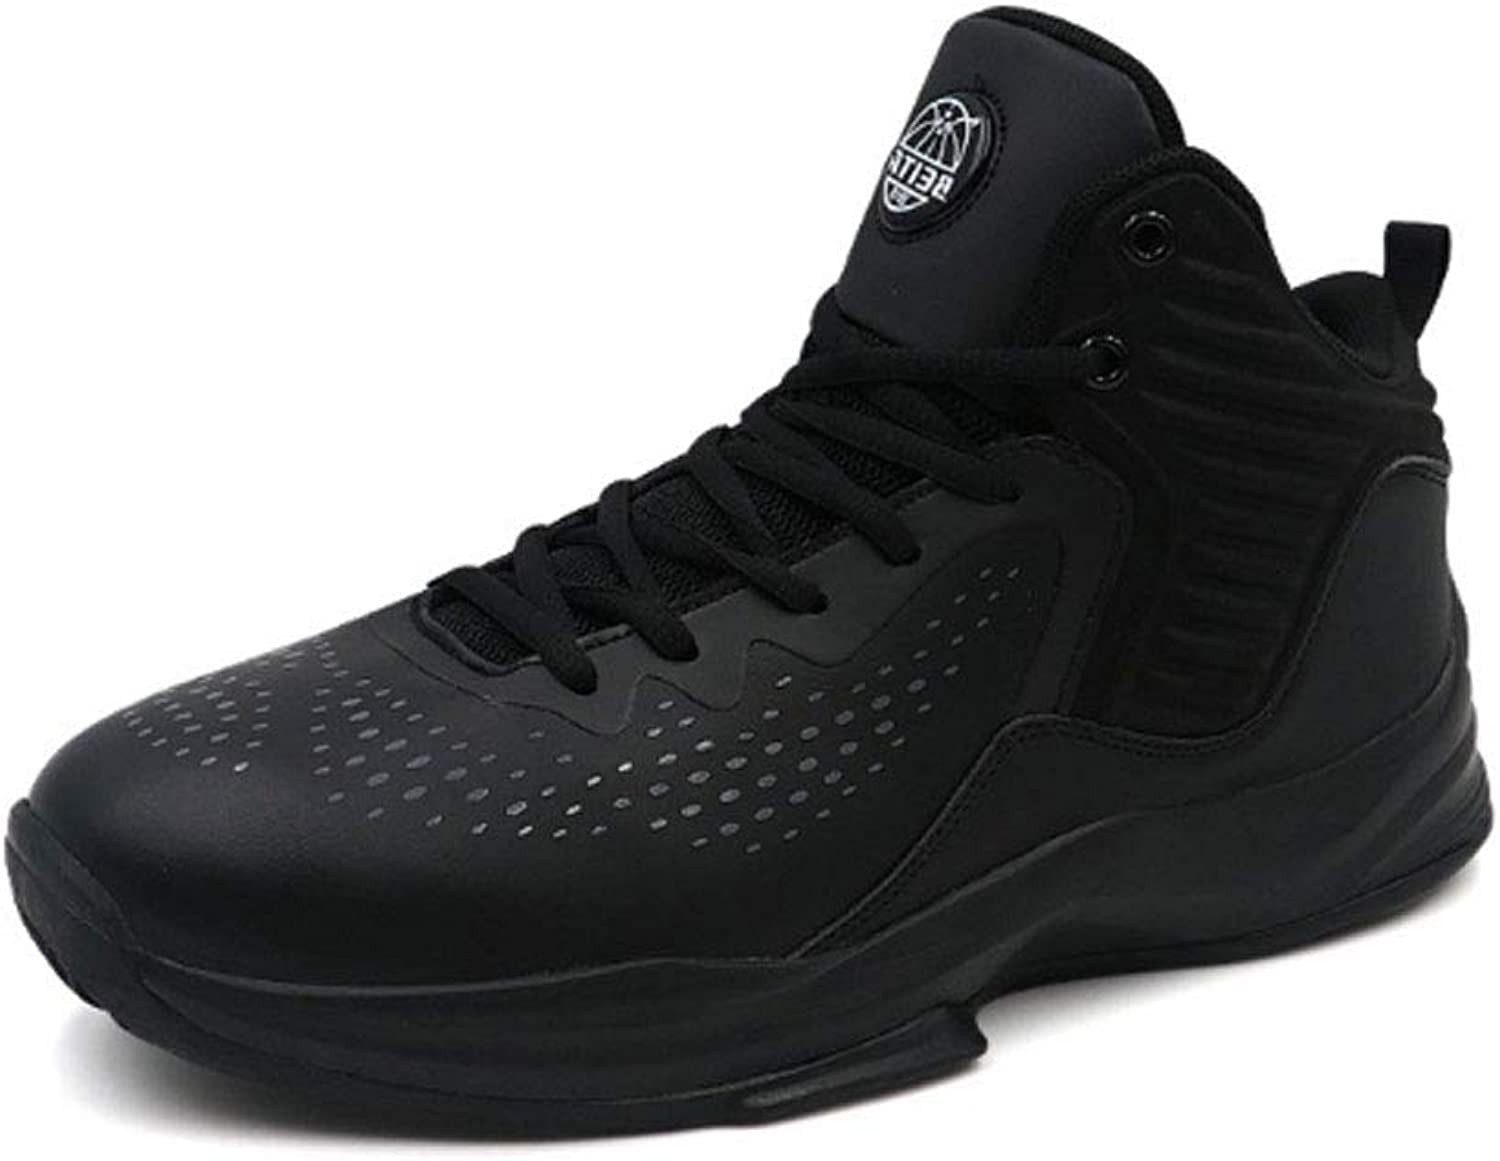 YSZDM Basketball shoes, Wear-Resistant Non-Slip High-Top Sneakers Cushioning Breathable Men'S Outdoor Boots,Black,45